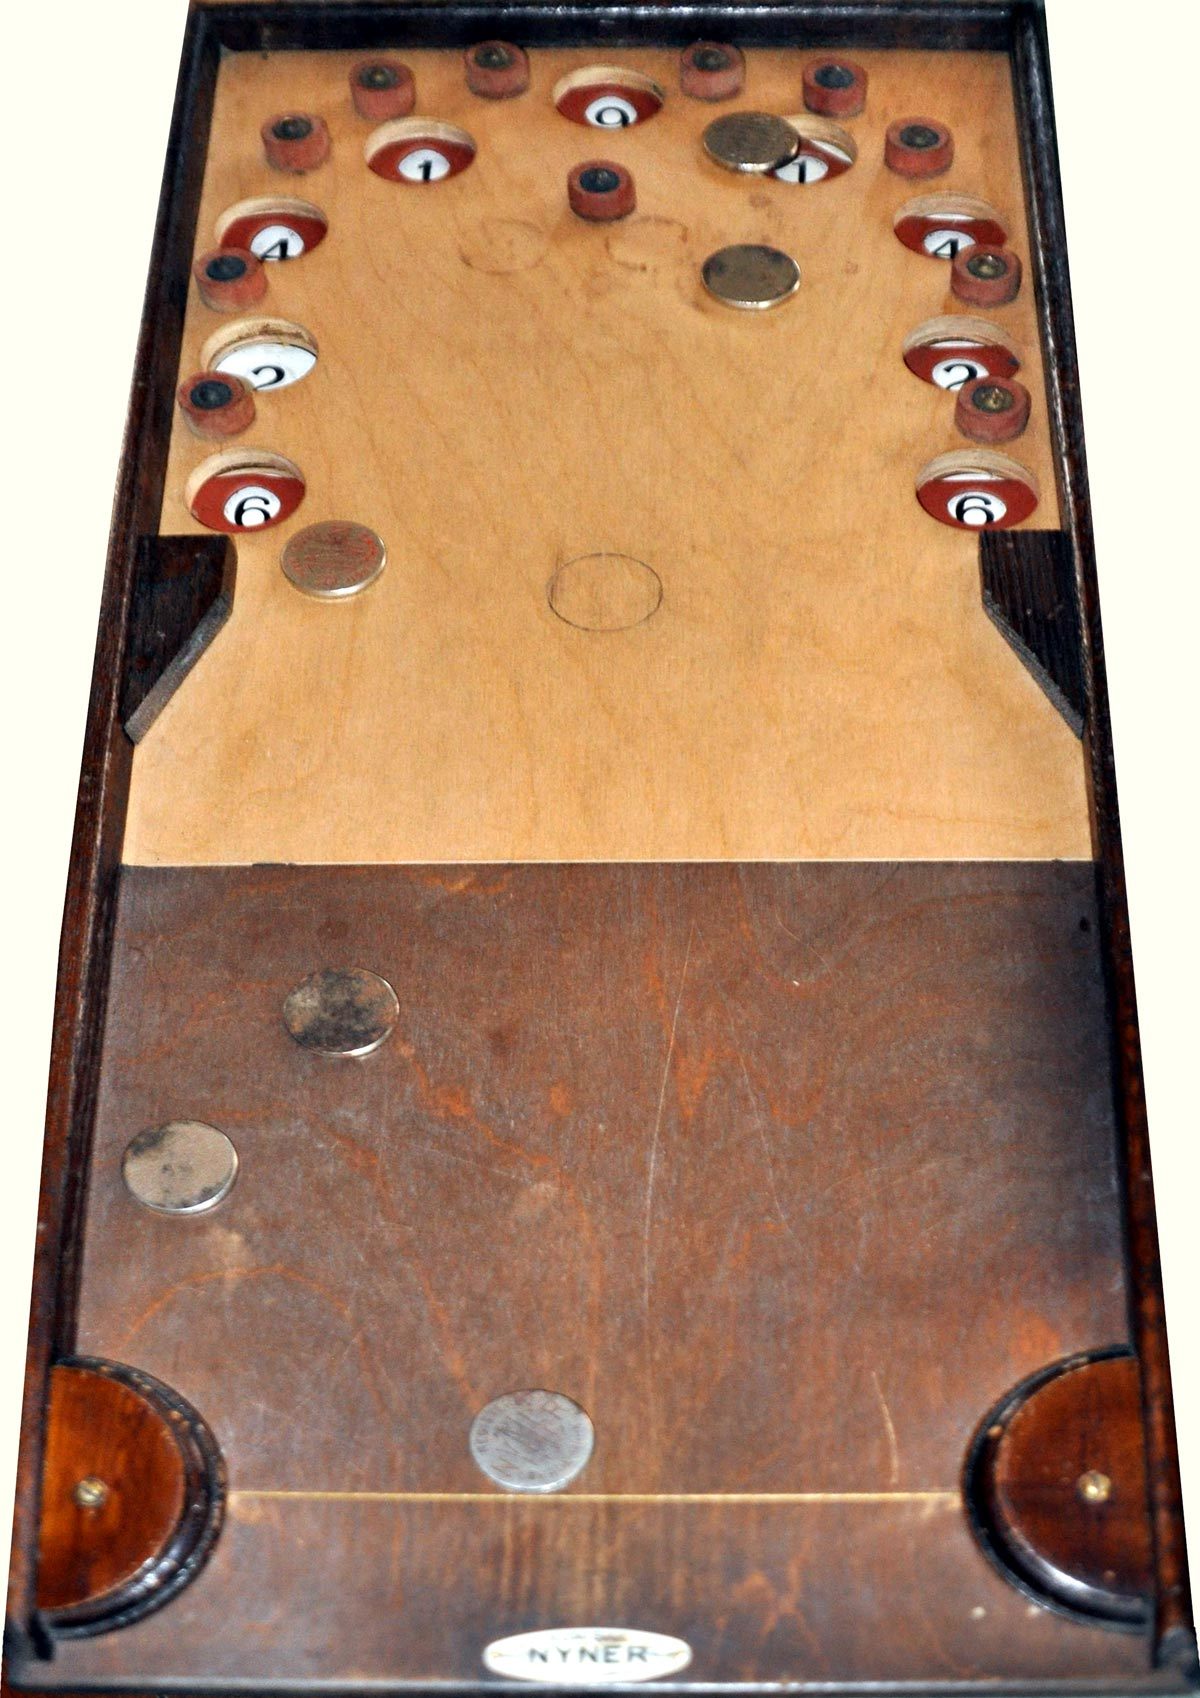 Nyner indoor board game, c.1935